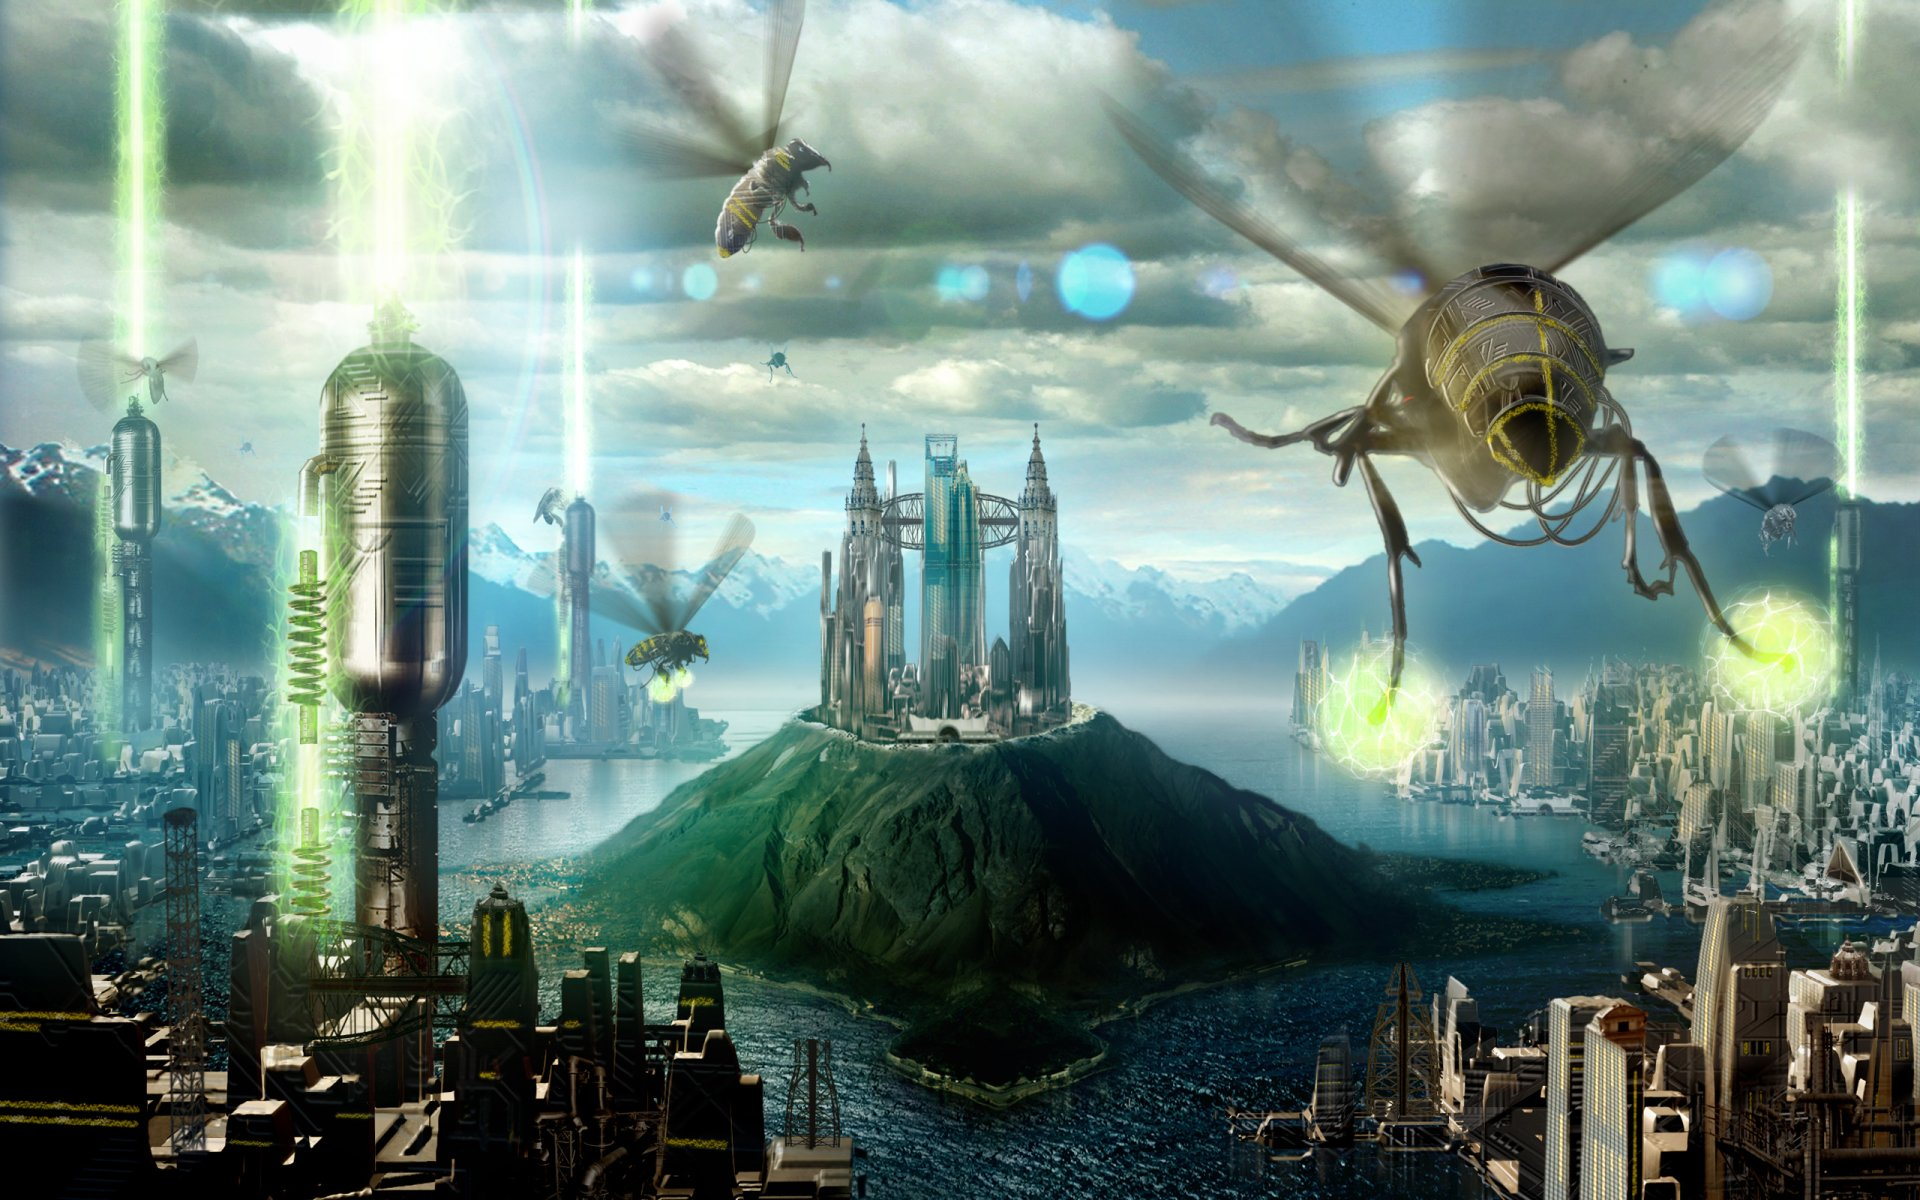 Sci Fi - City  Sci Fi Wallpaper